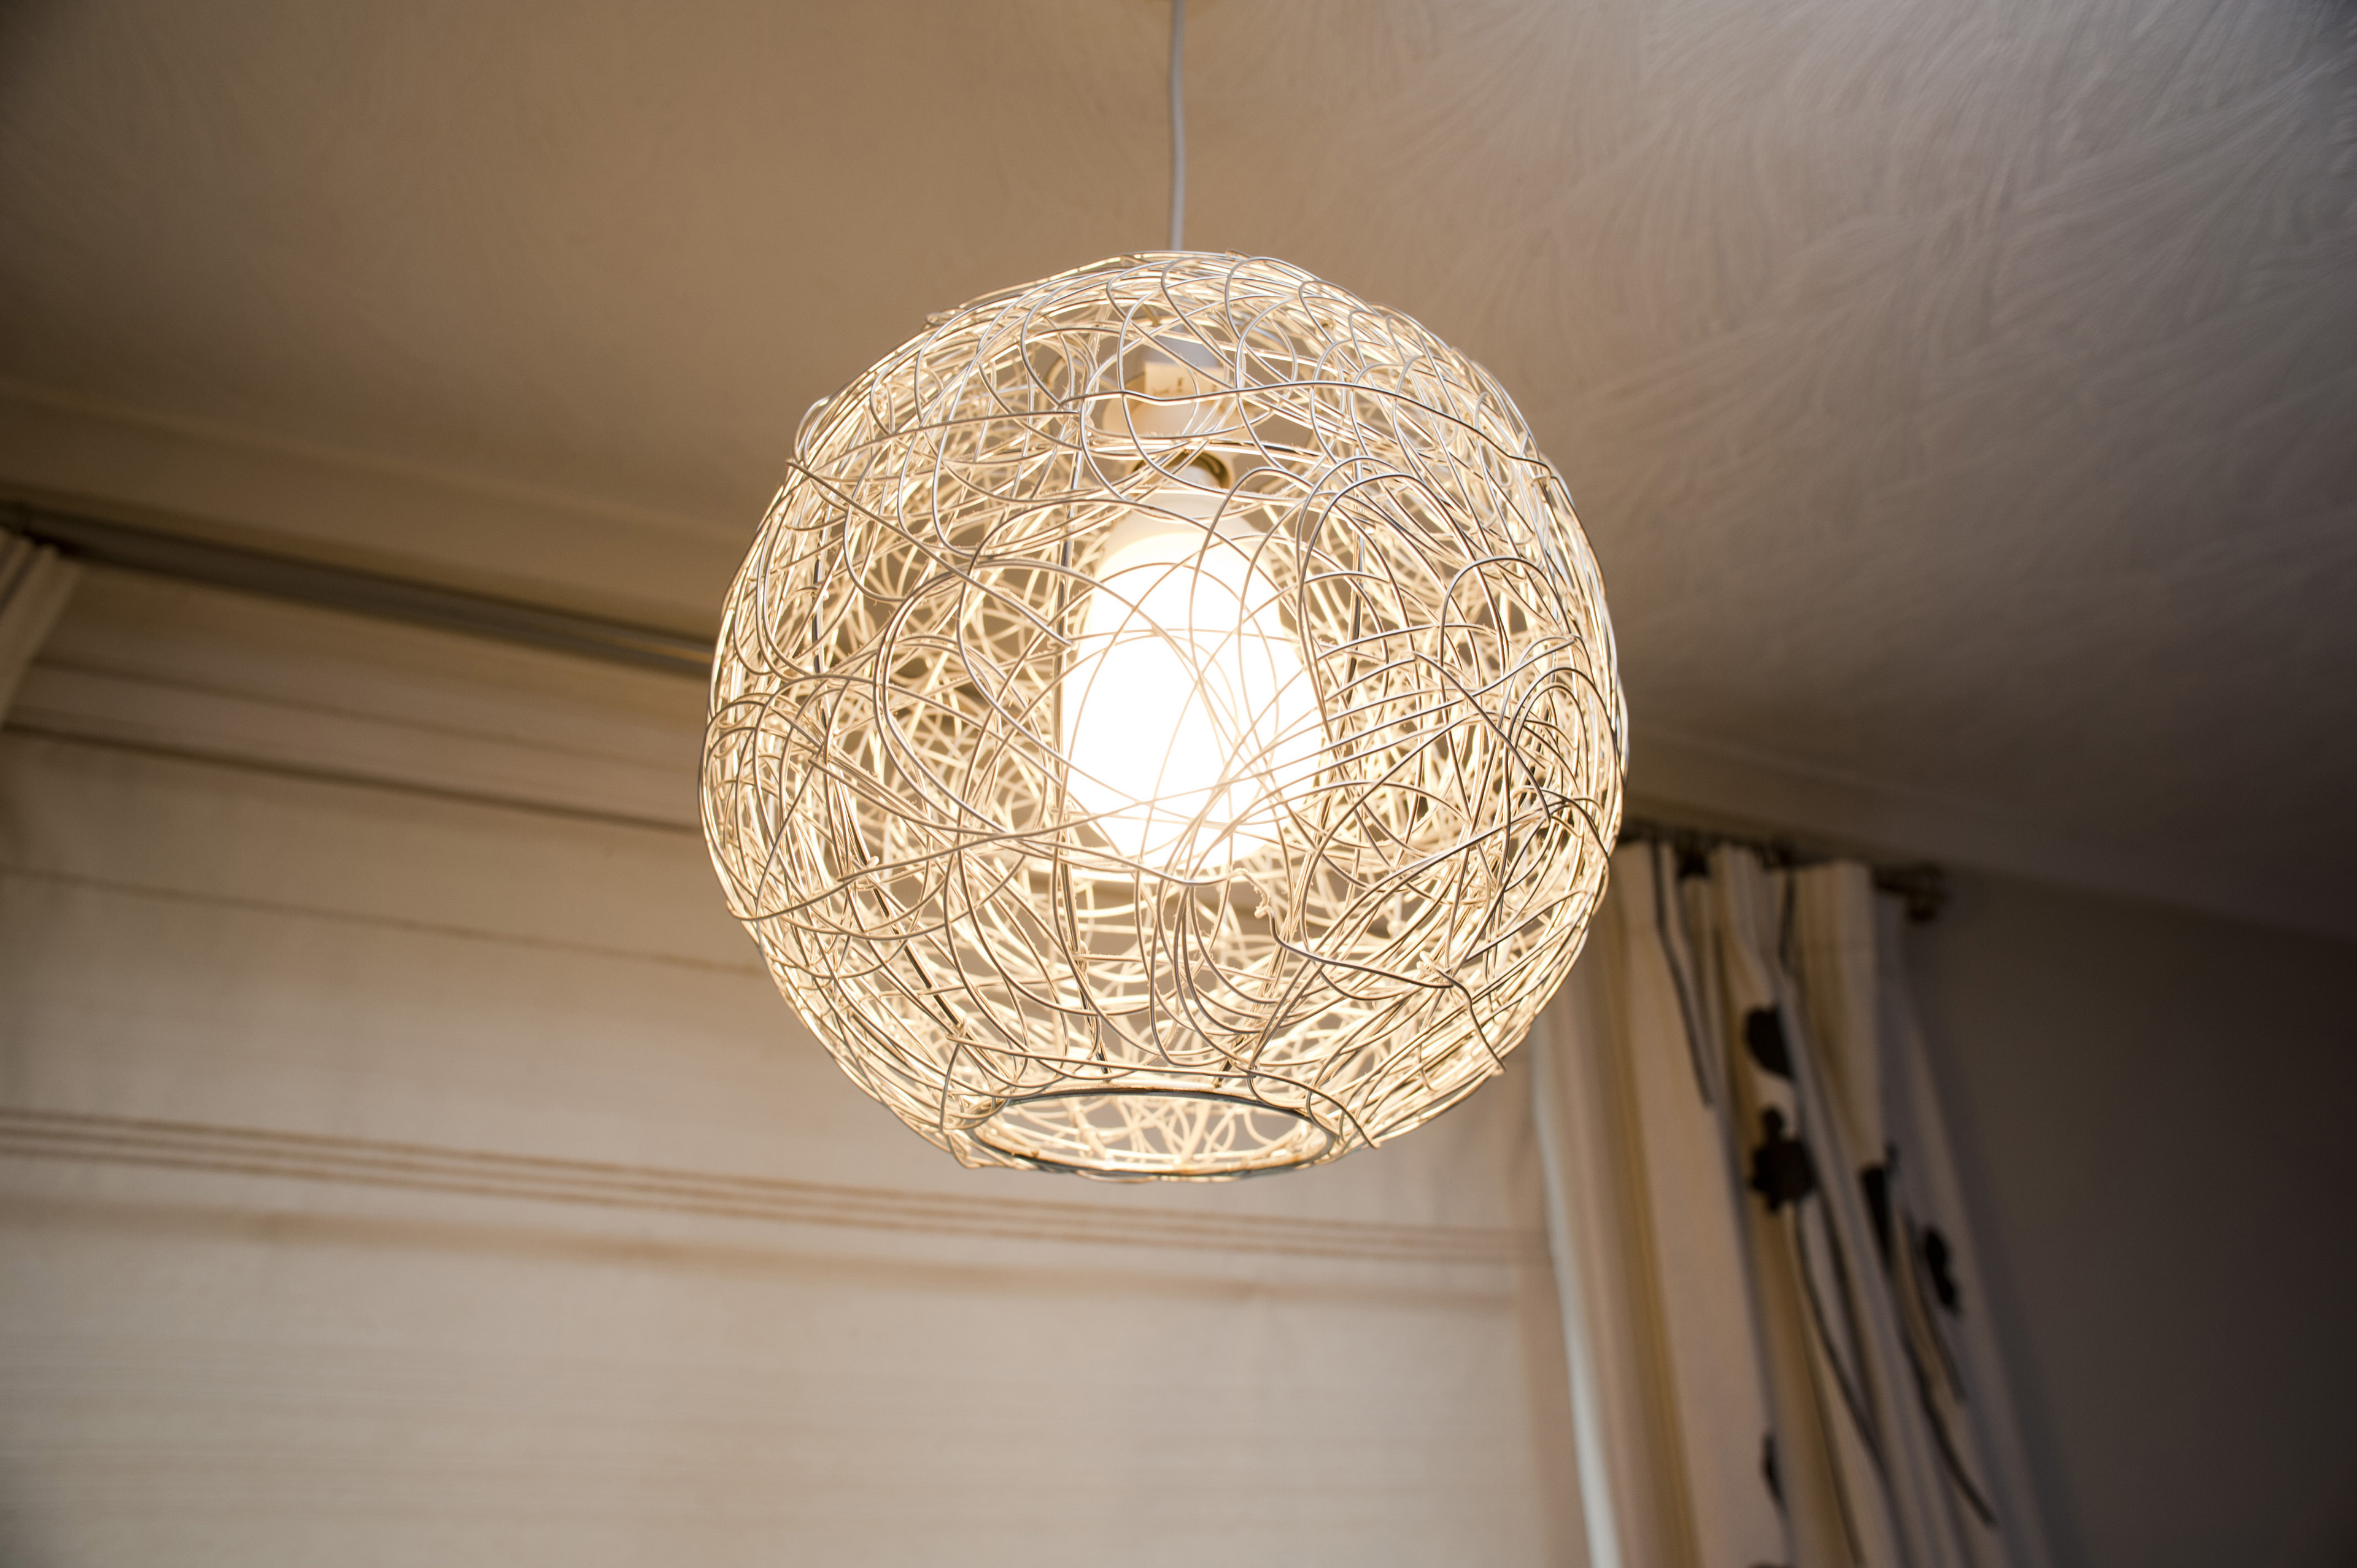 Hand crafted spherical rattan or wicker globe lampshade with an illuminated light bulb hanging from a ceiling indoors